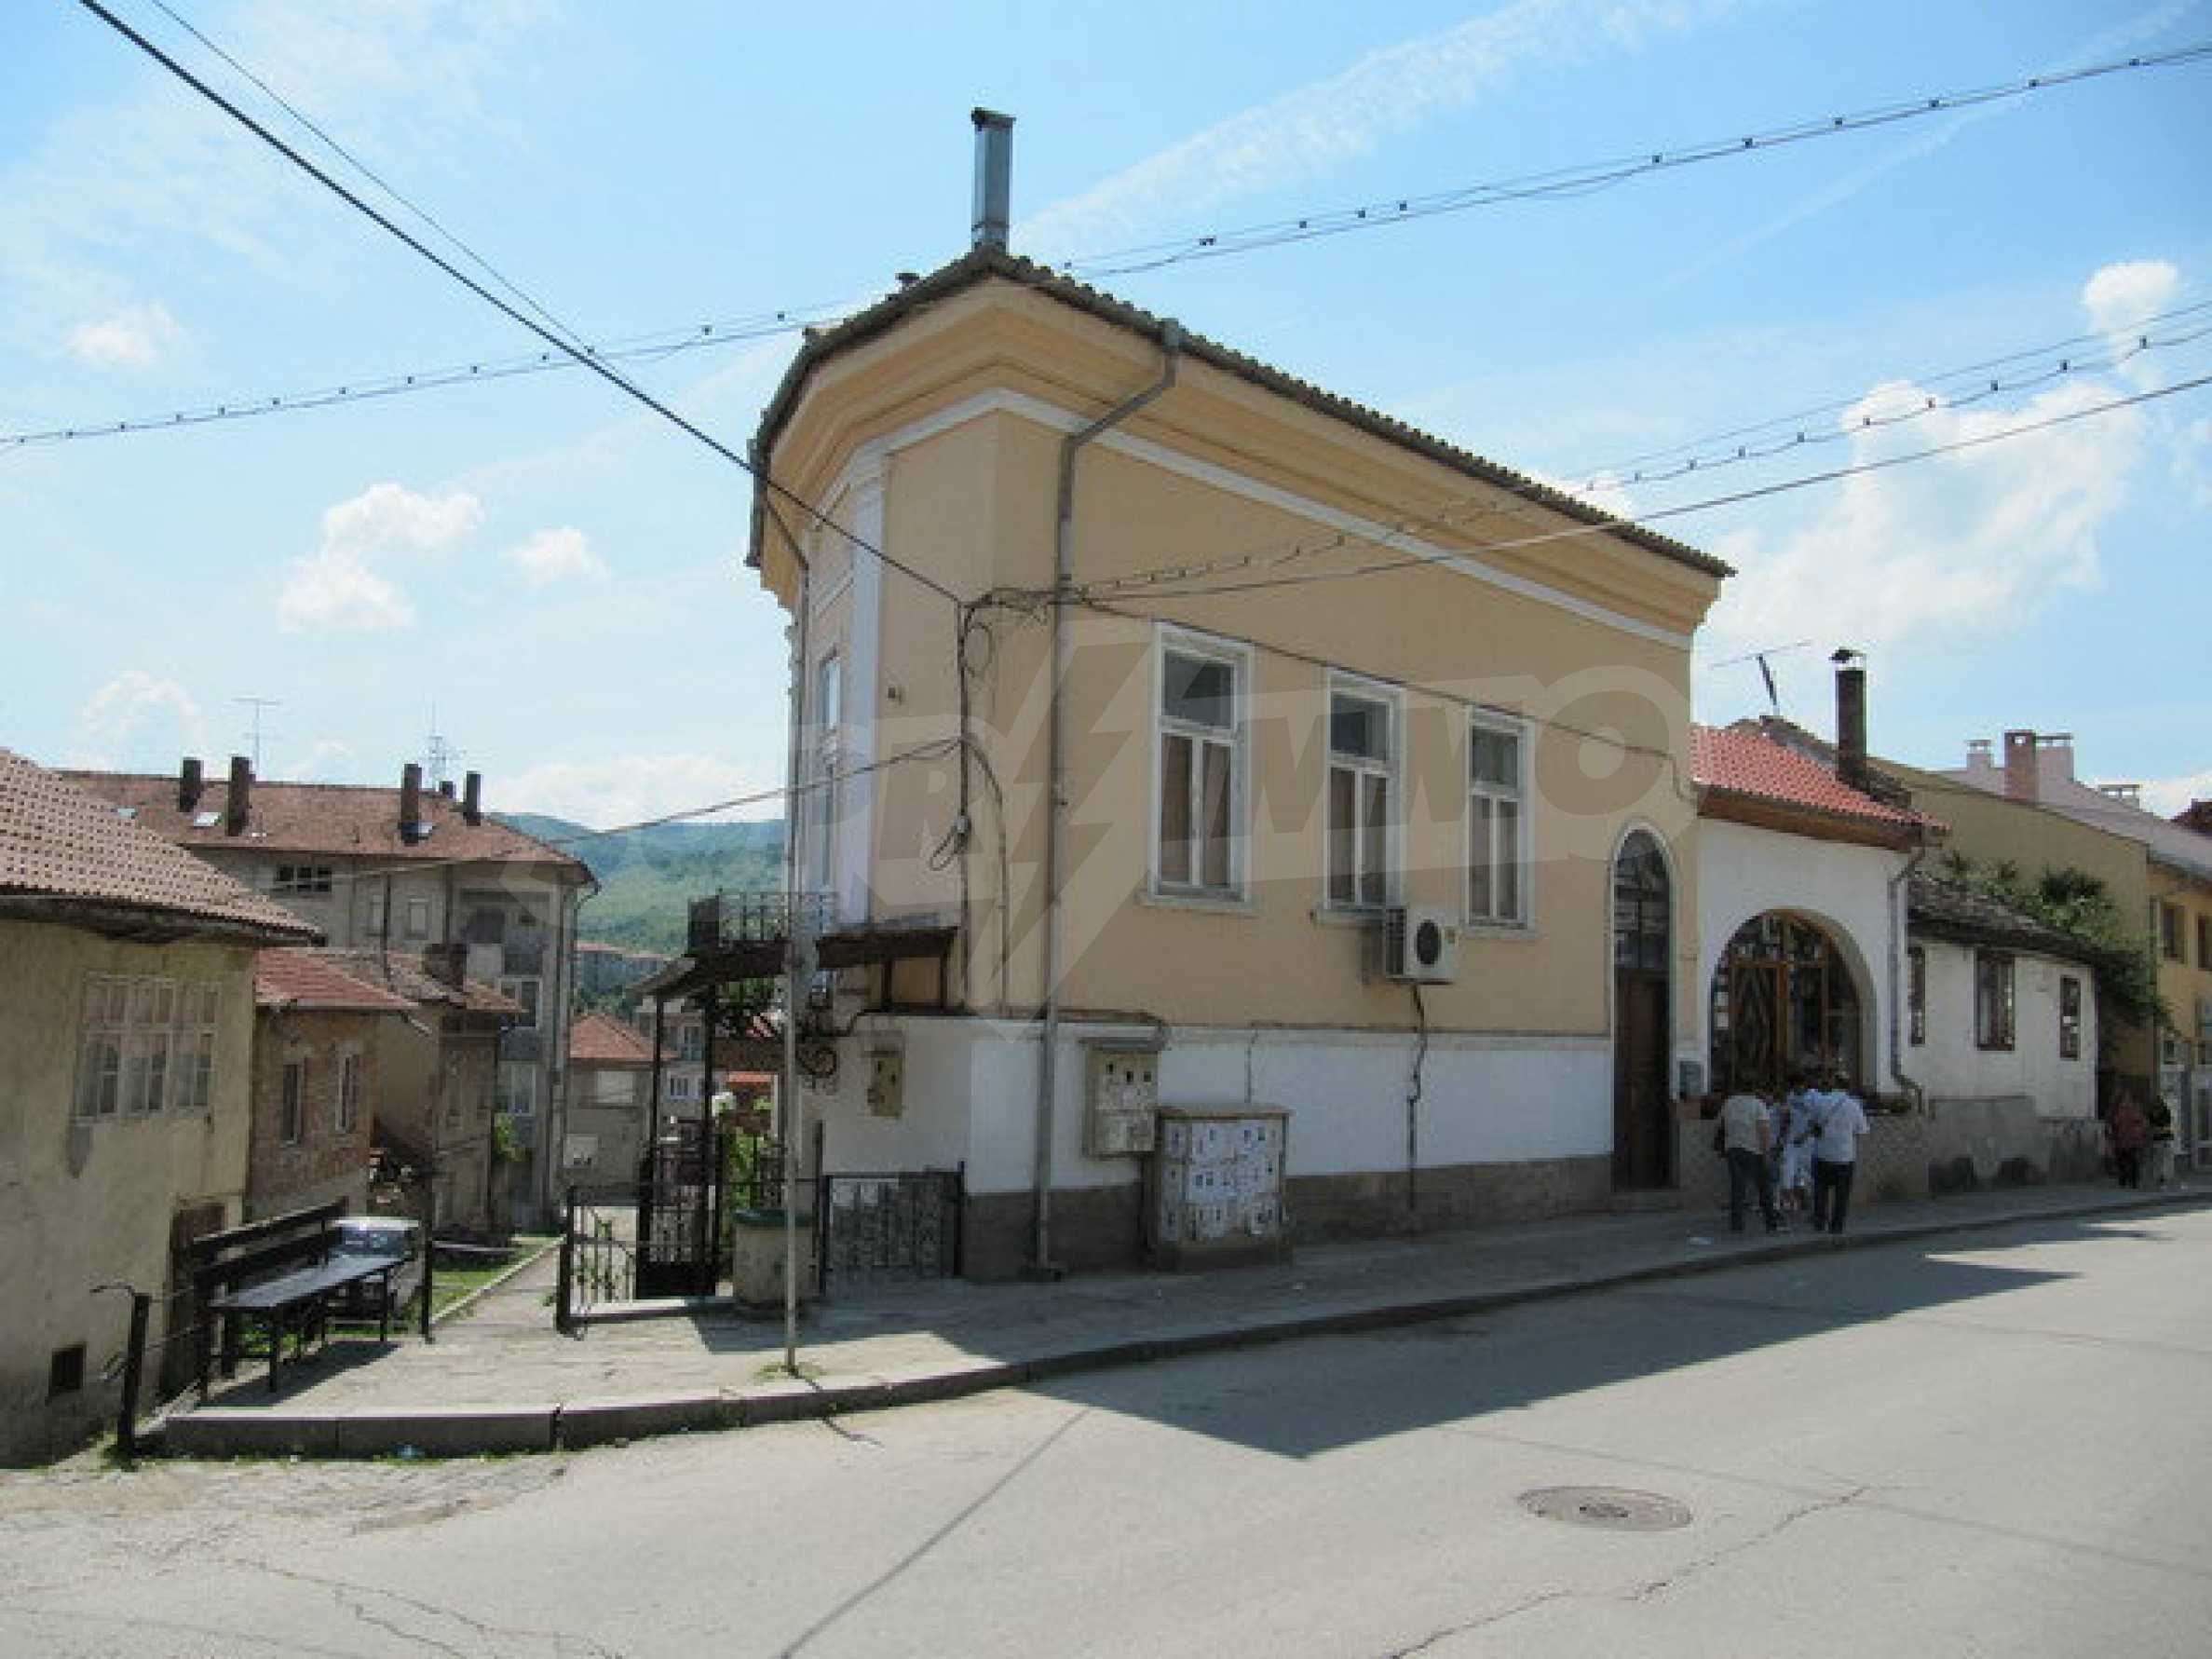 House with shop and fast food premise in the centre of Dryanovo 2